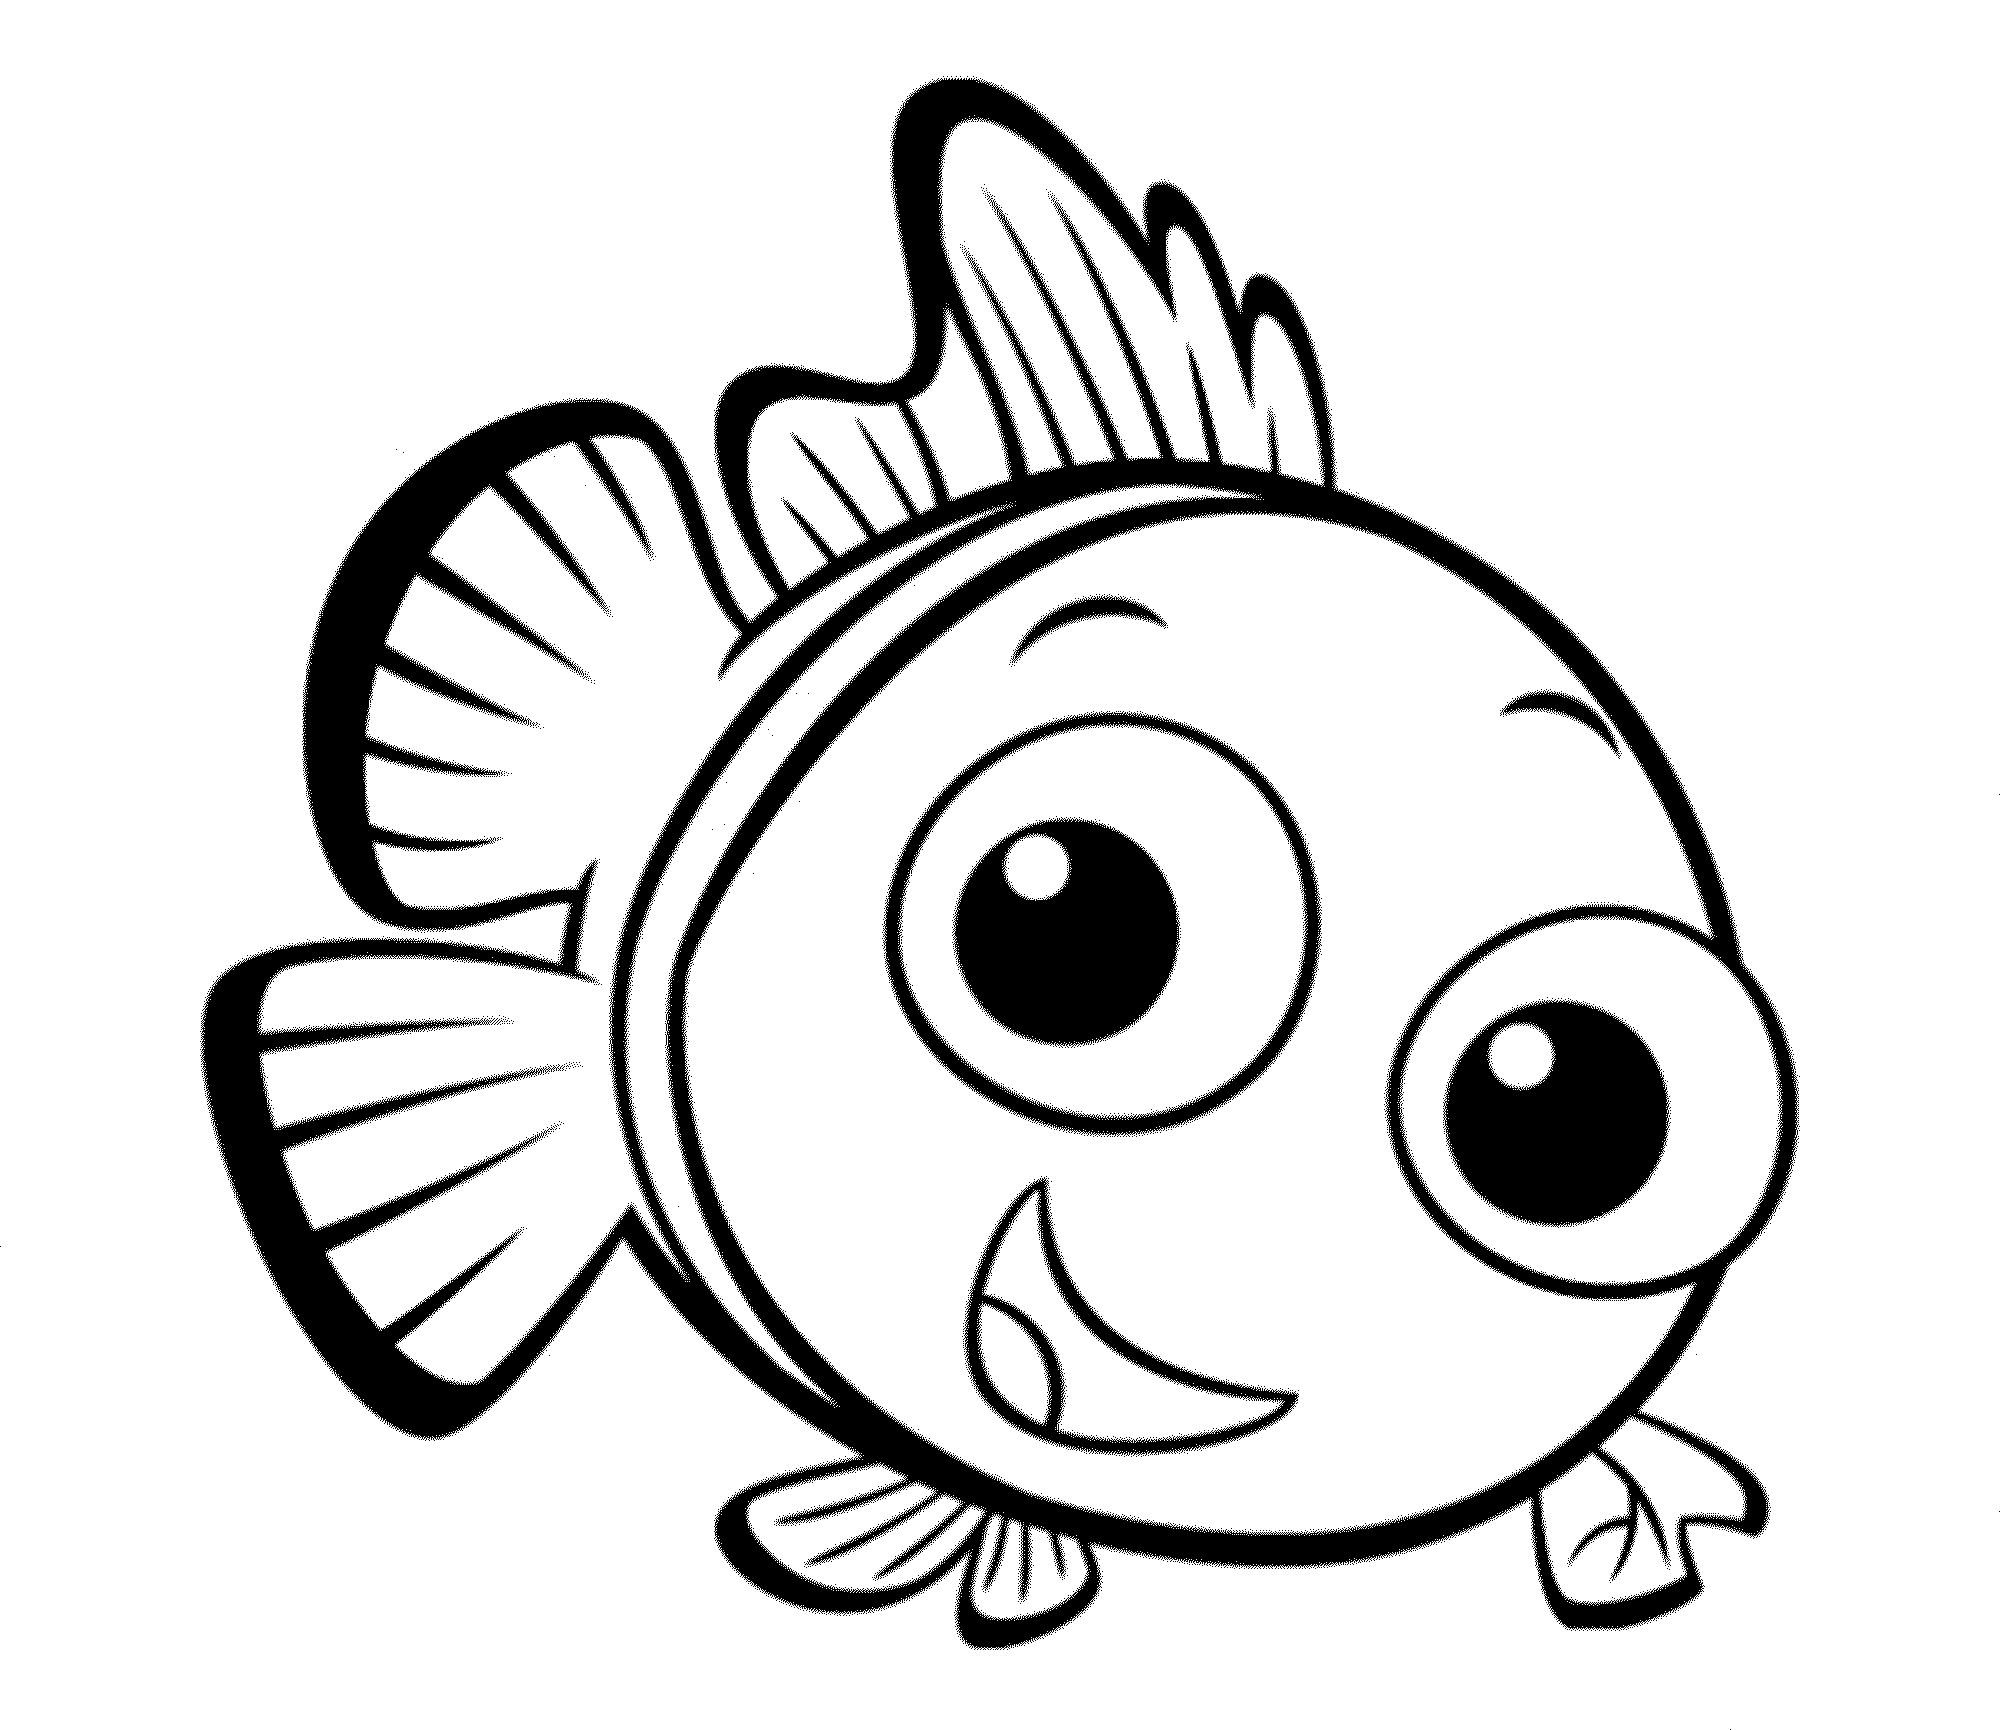 fish picture to color print download cute and educative fish coloring pages fish color picture to